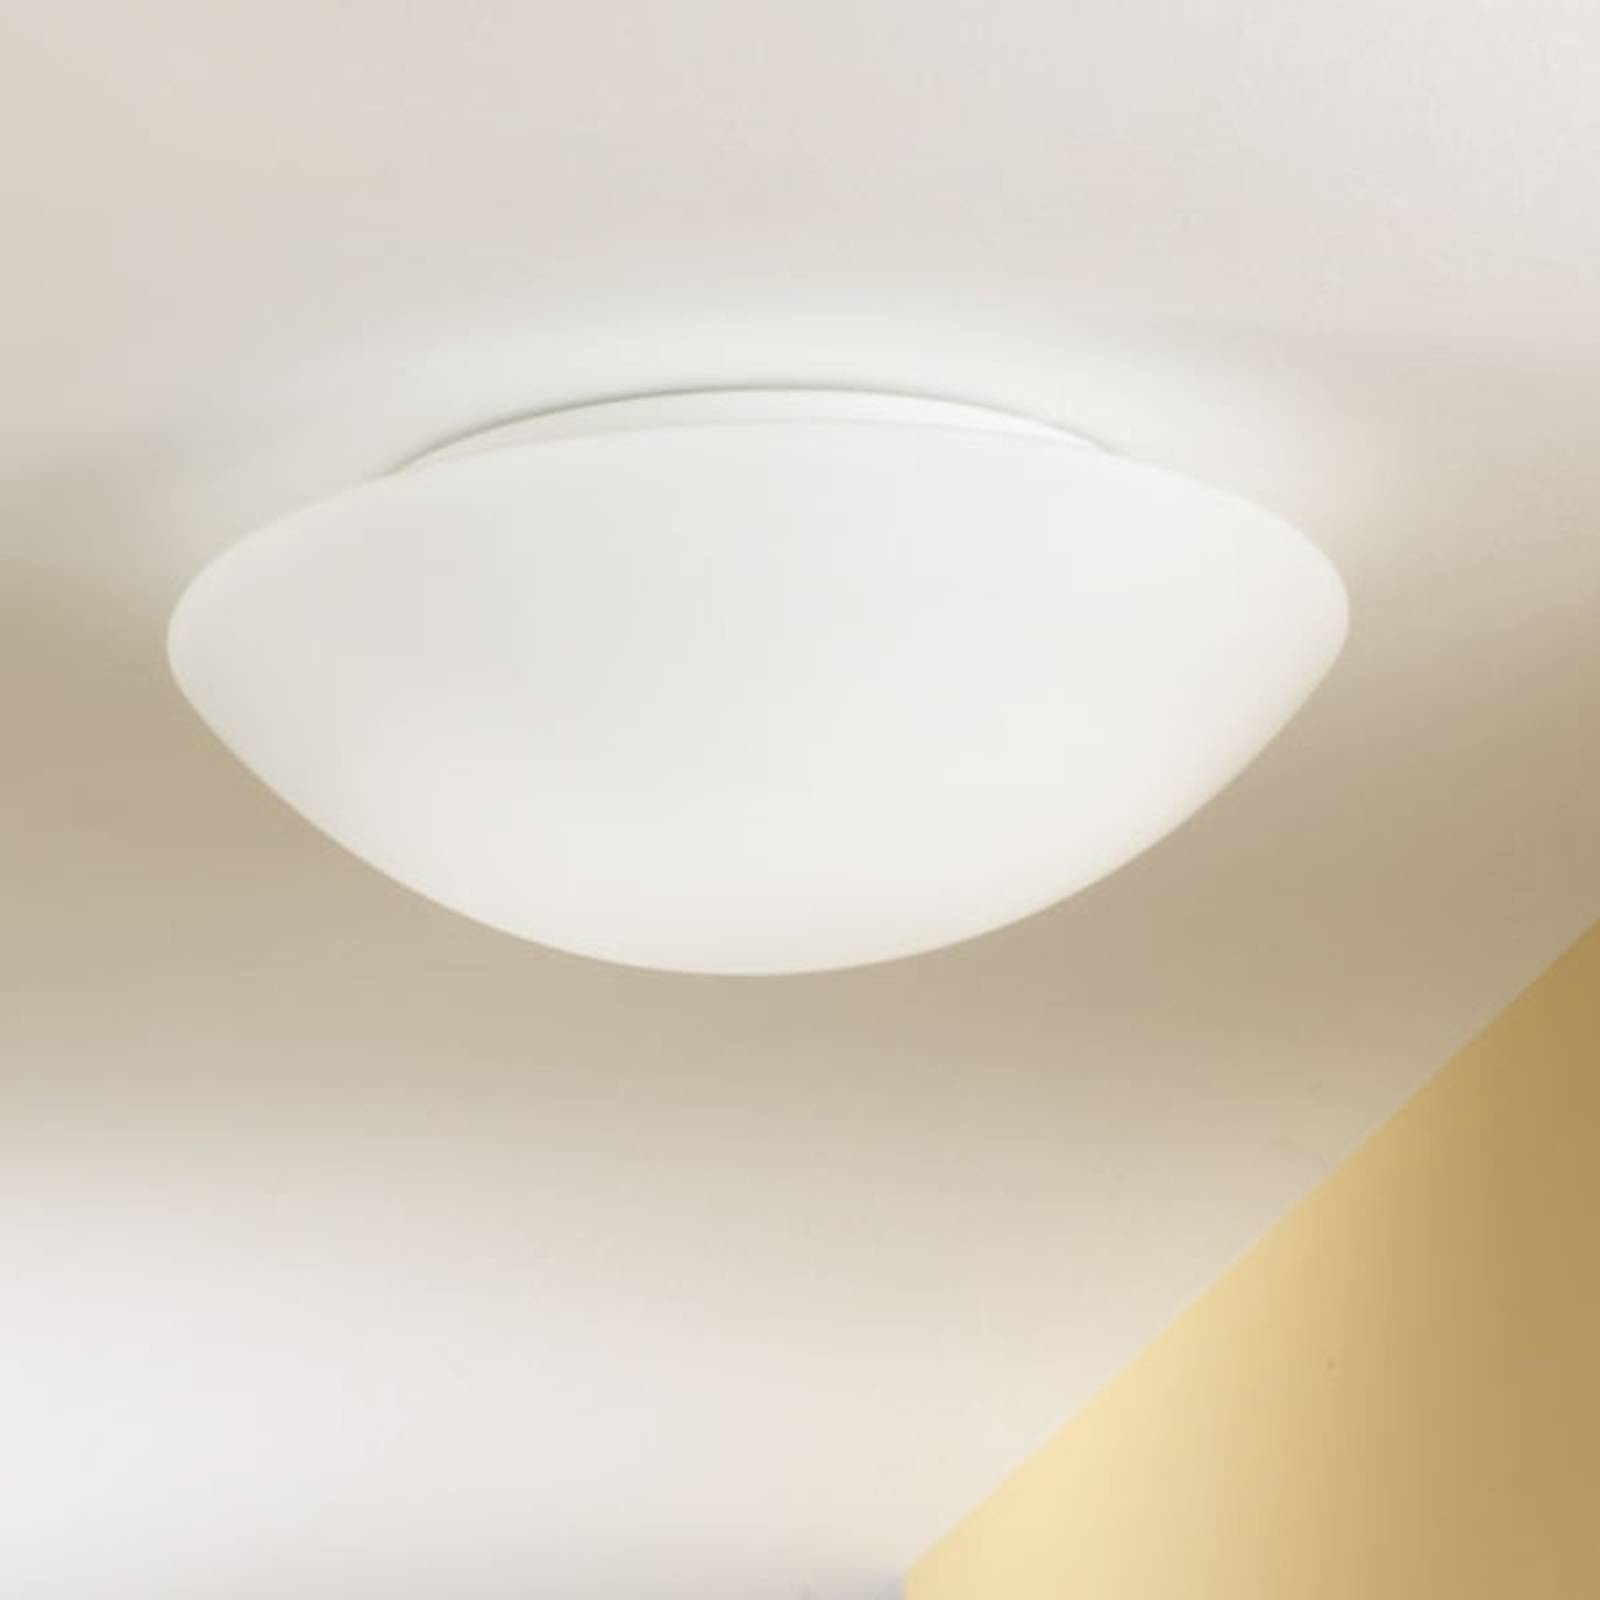 Ceiling and wall light PANDORA 36 cm from FABAS LUCE